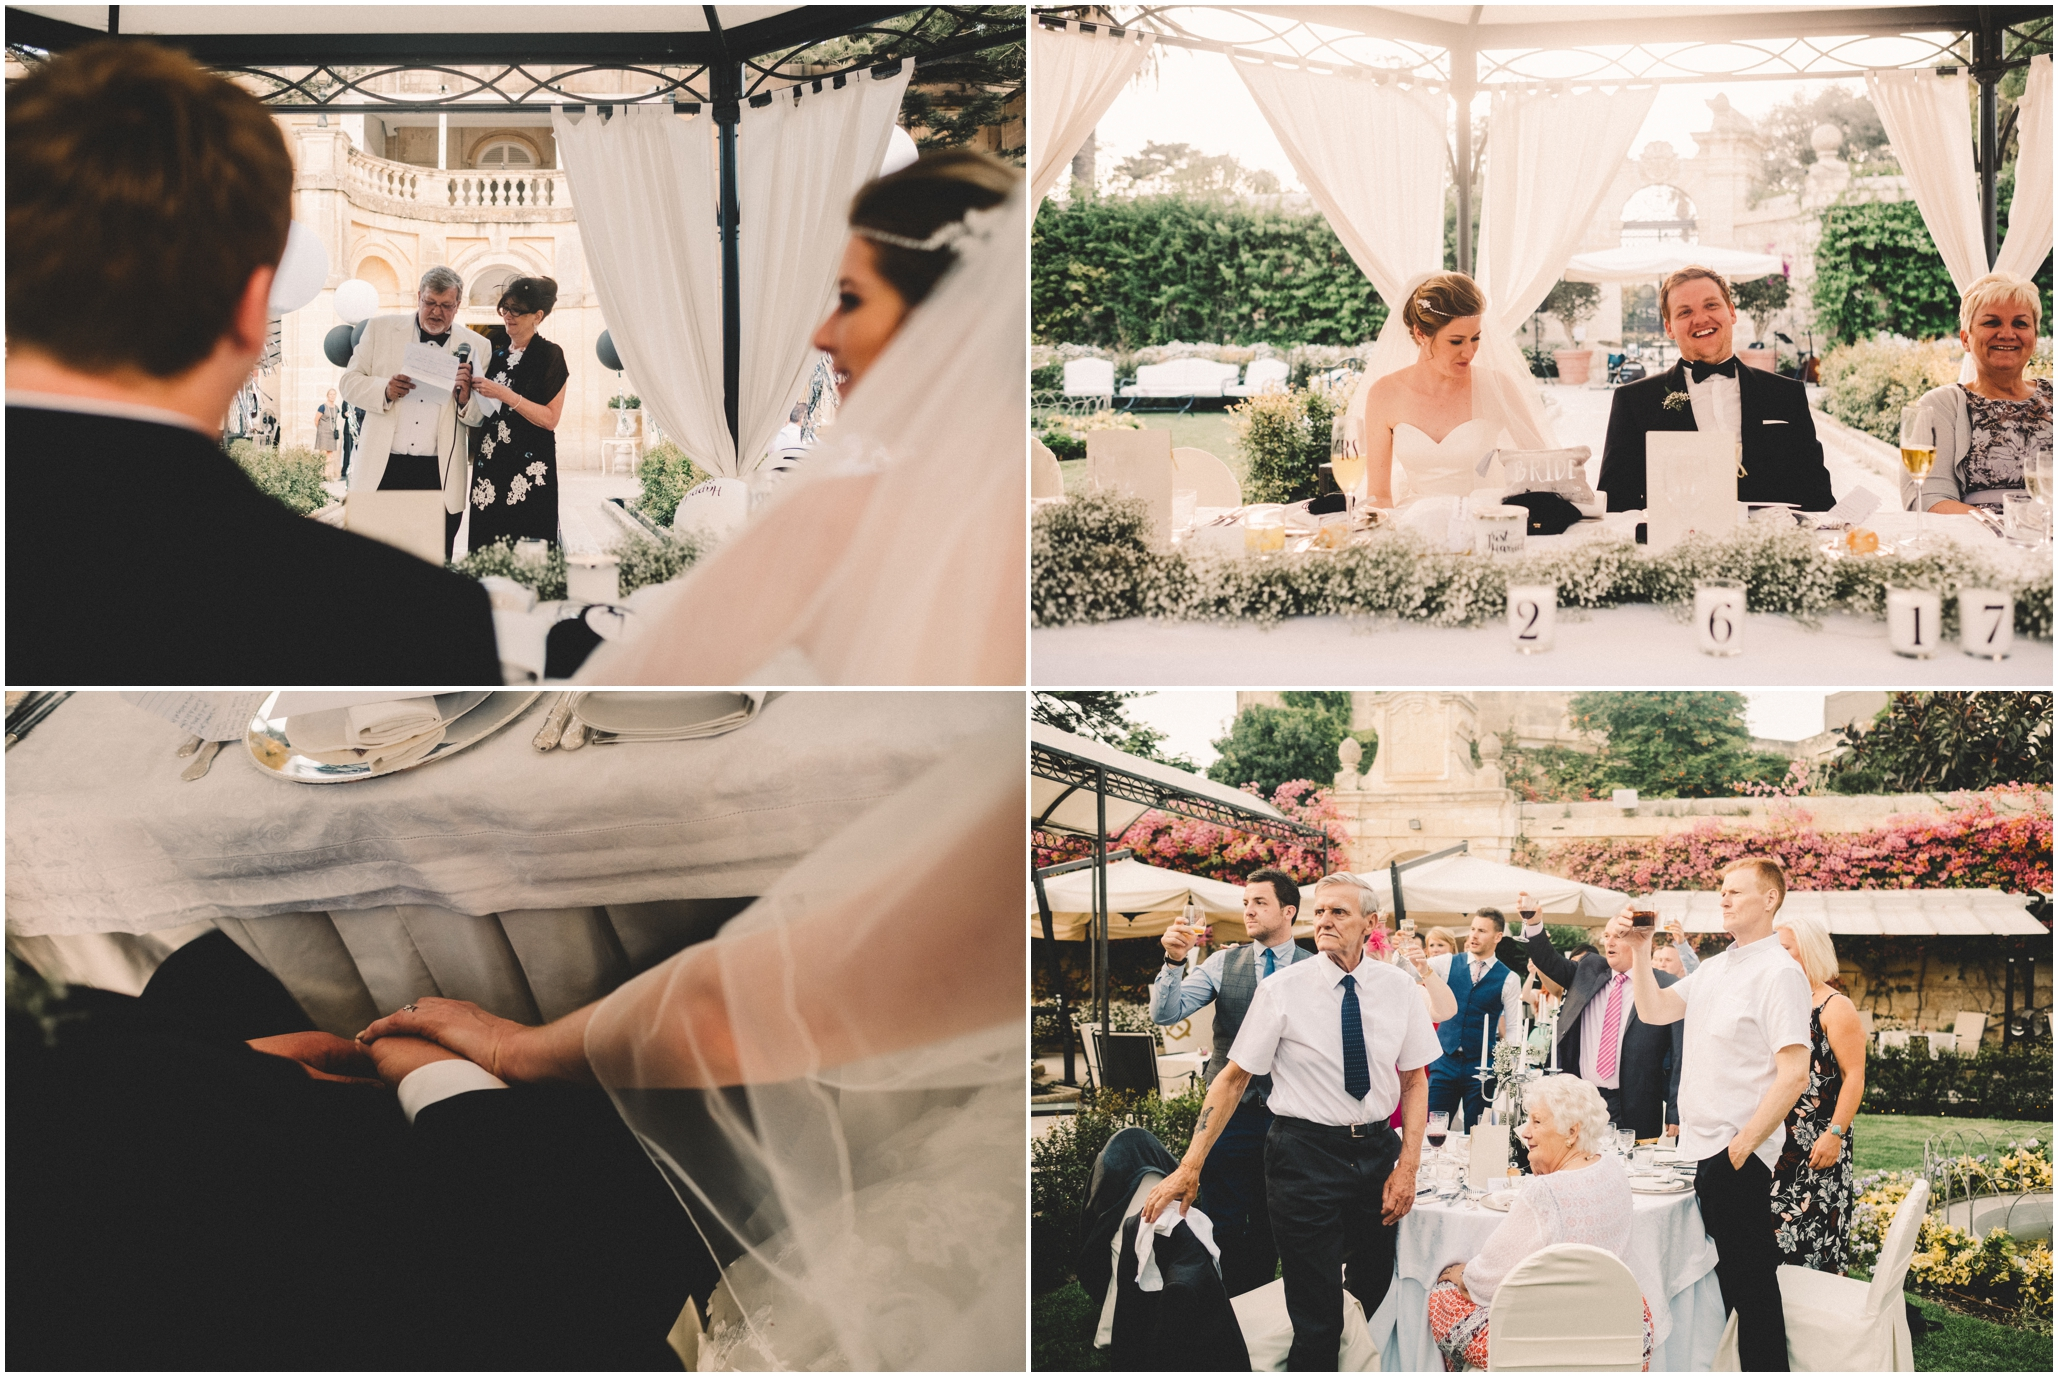 Malta Destination Wedding Photography at The Palazzo Parisio